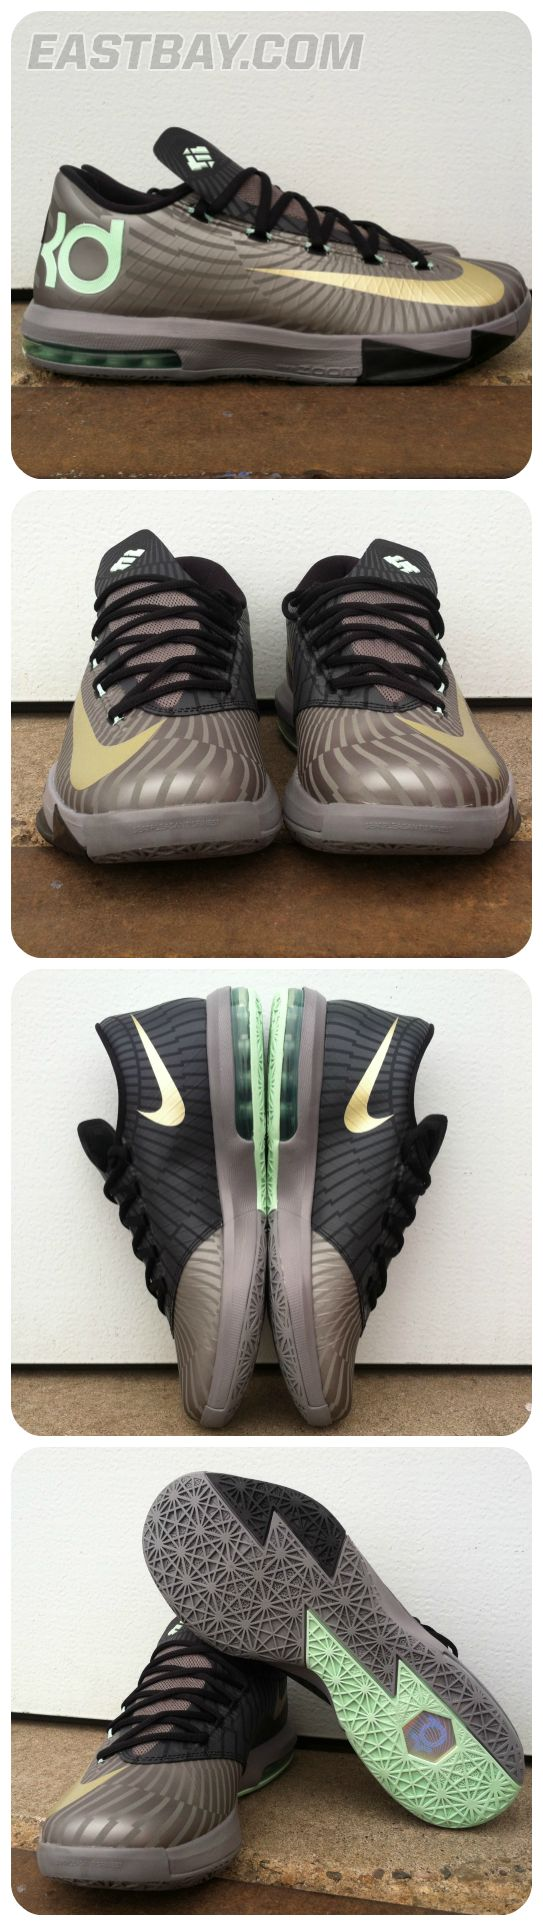 Displaying 20> Images For - Eastbay Basketball Shoes